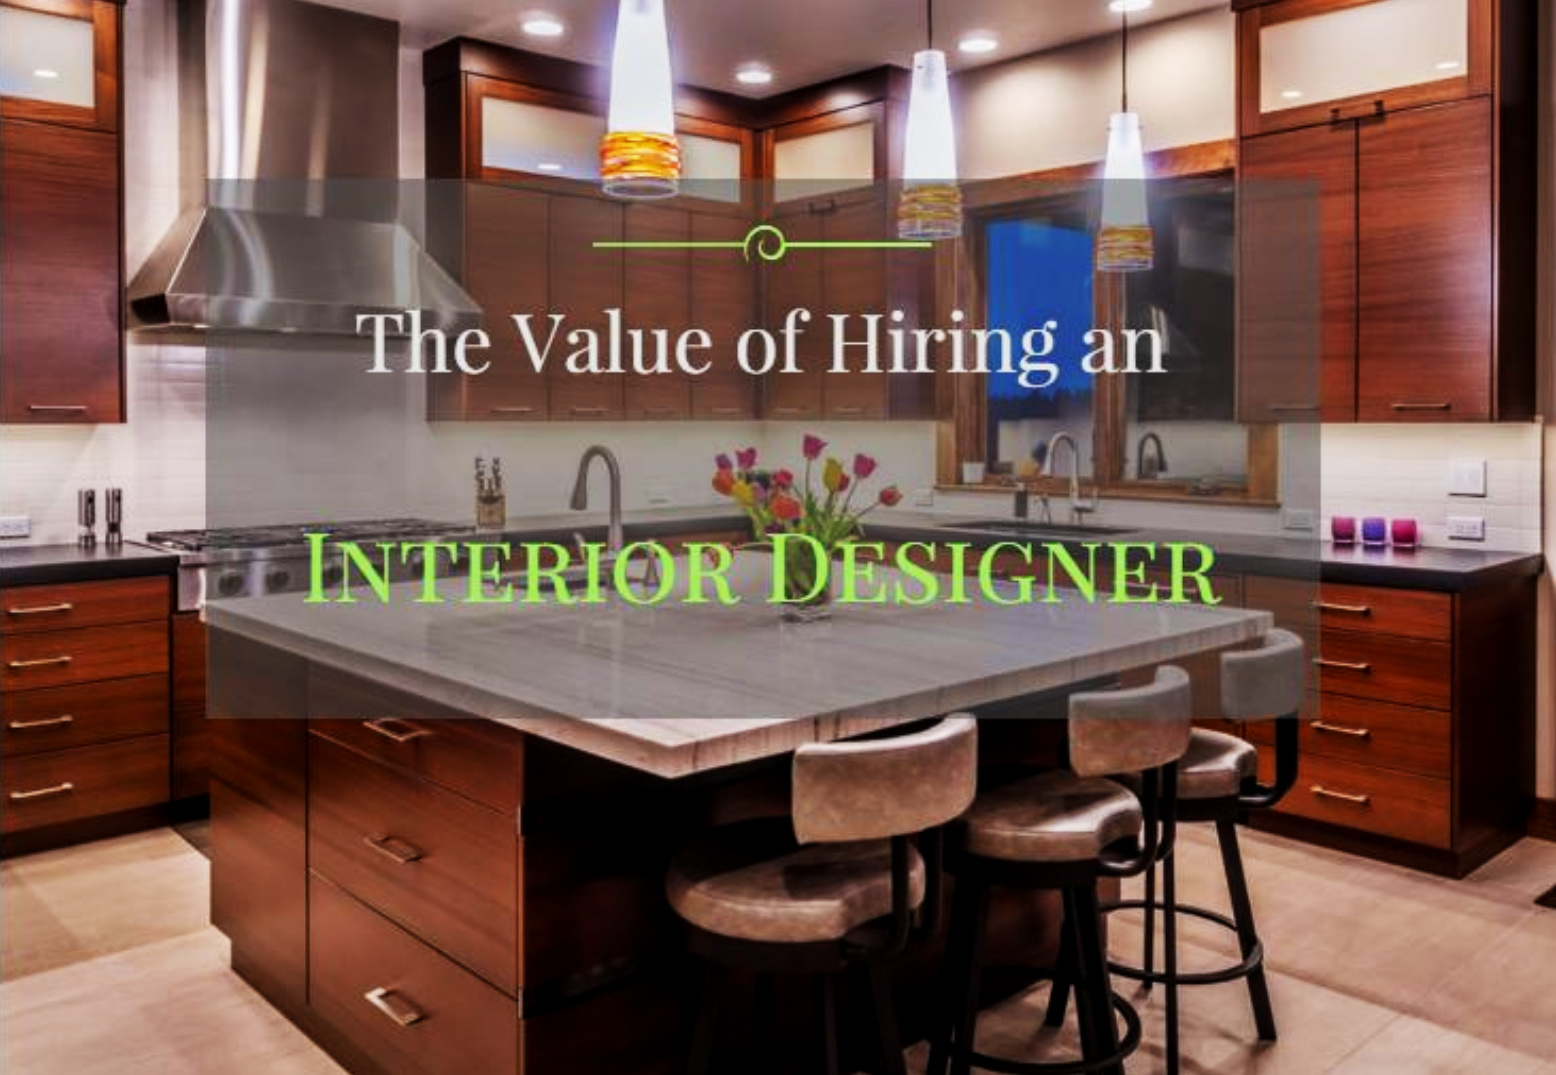 The Value Of Hiring An Interior Designer